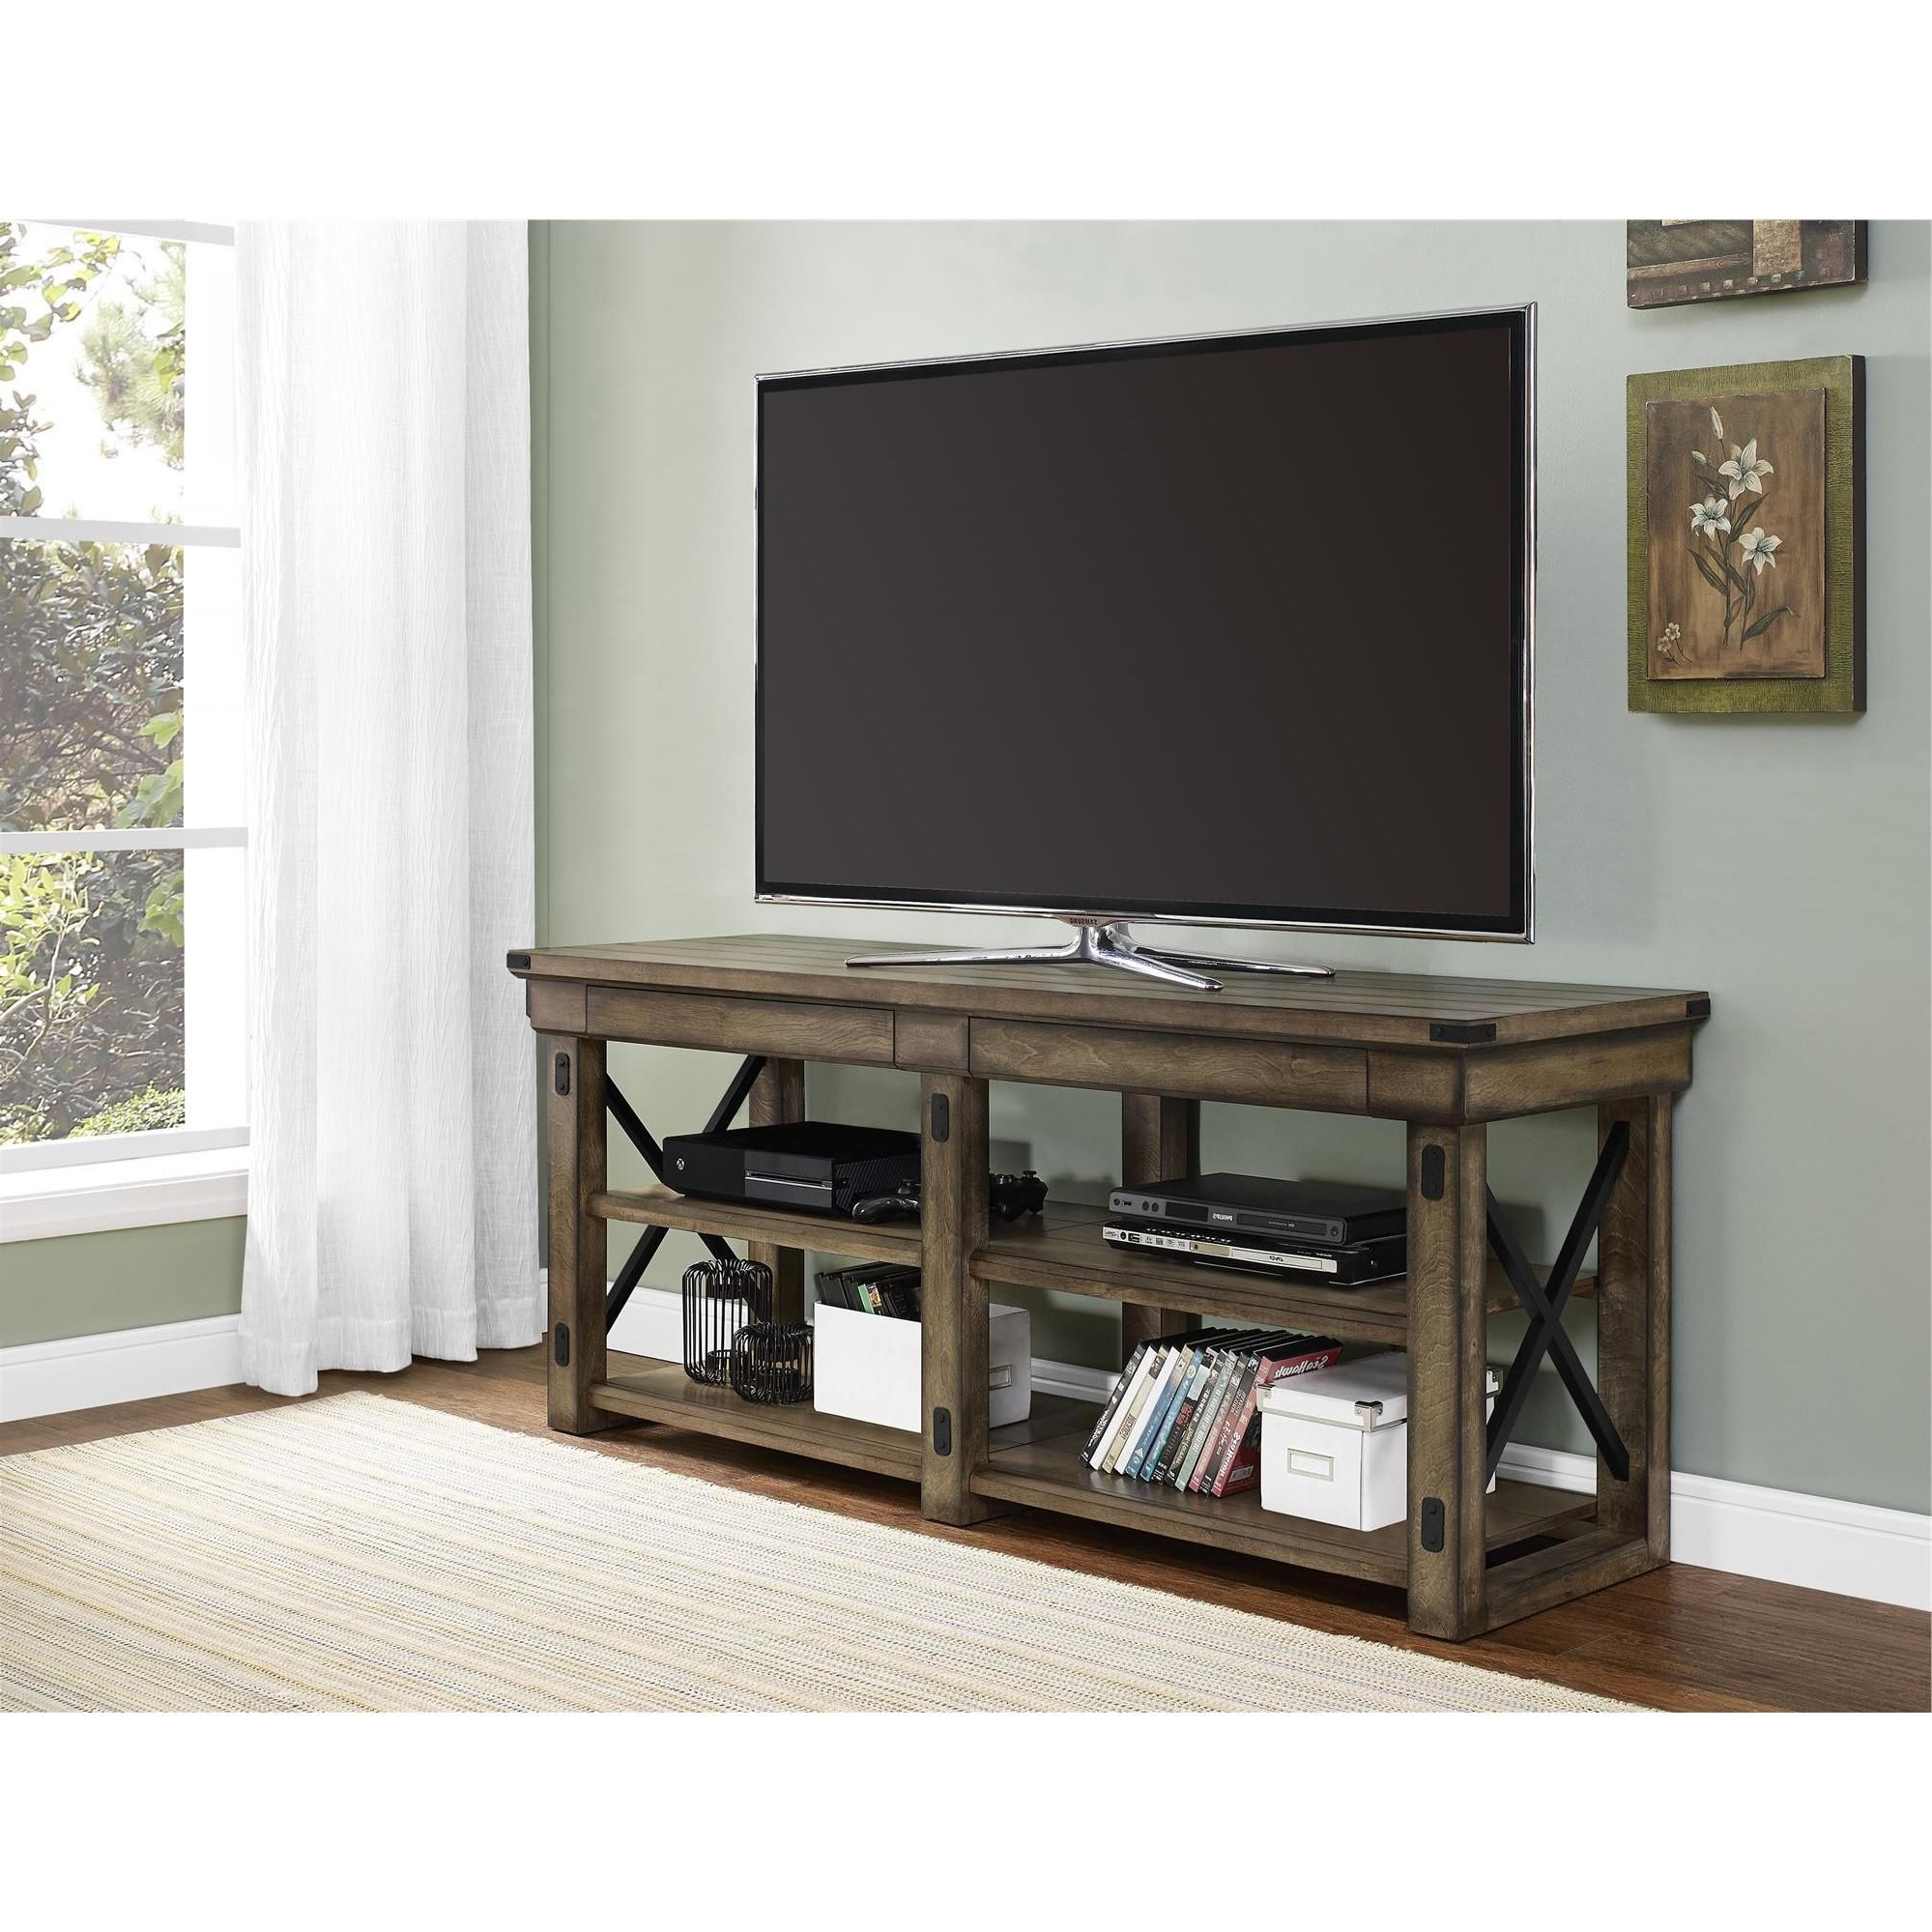 Bring Beauty And Better Organization Into Your Living Room With The Intended For Preston 66 Inch Tv Stands (View 2 of 20)